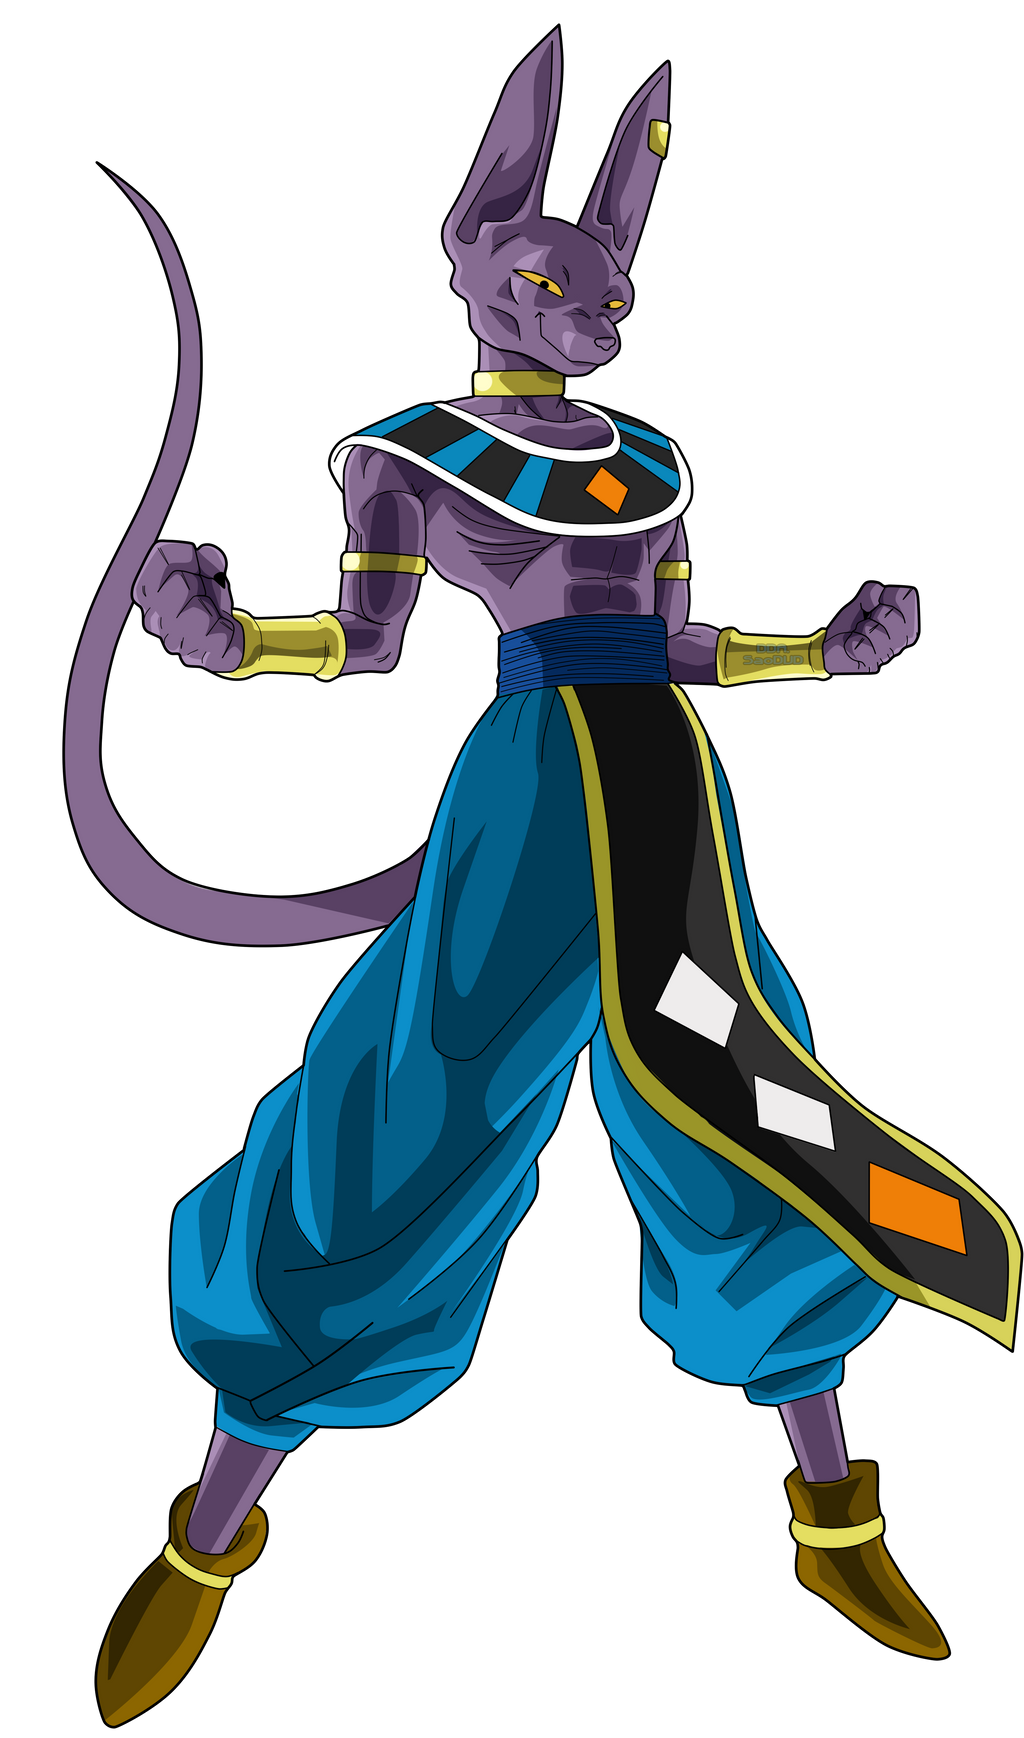 Beerus The God by SaoDVD